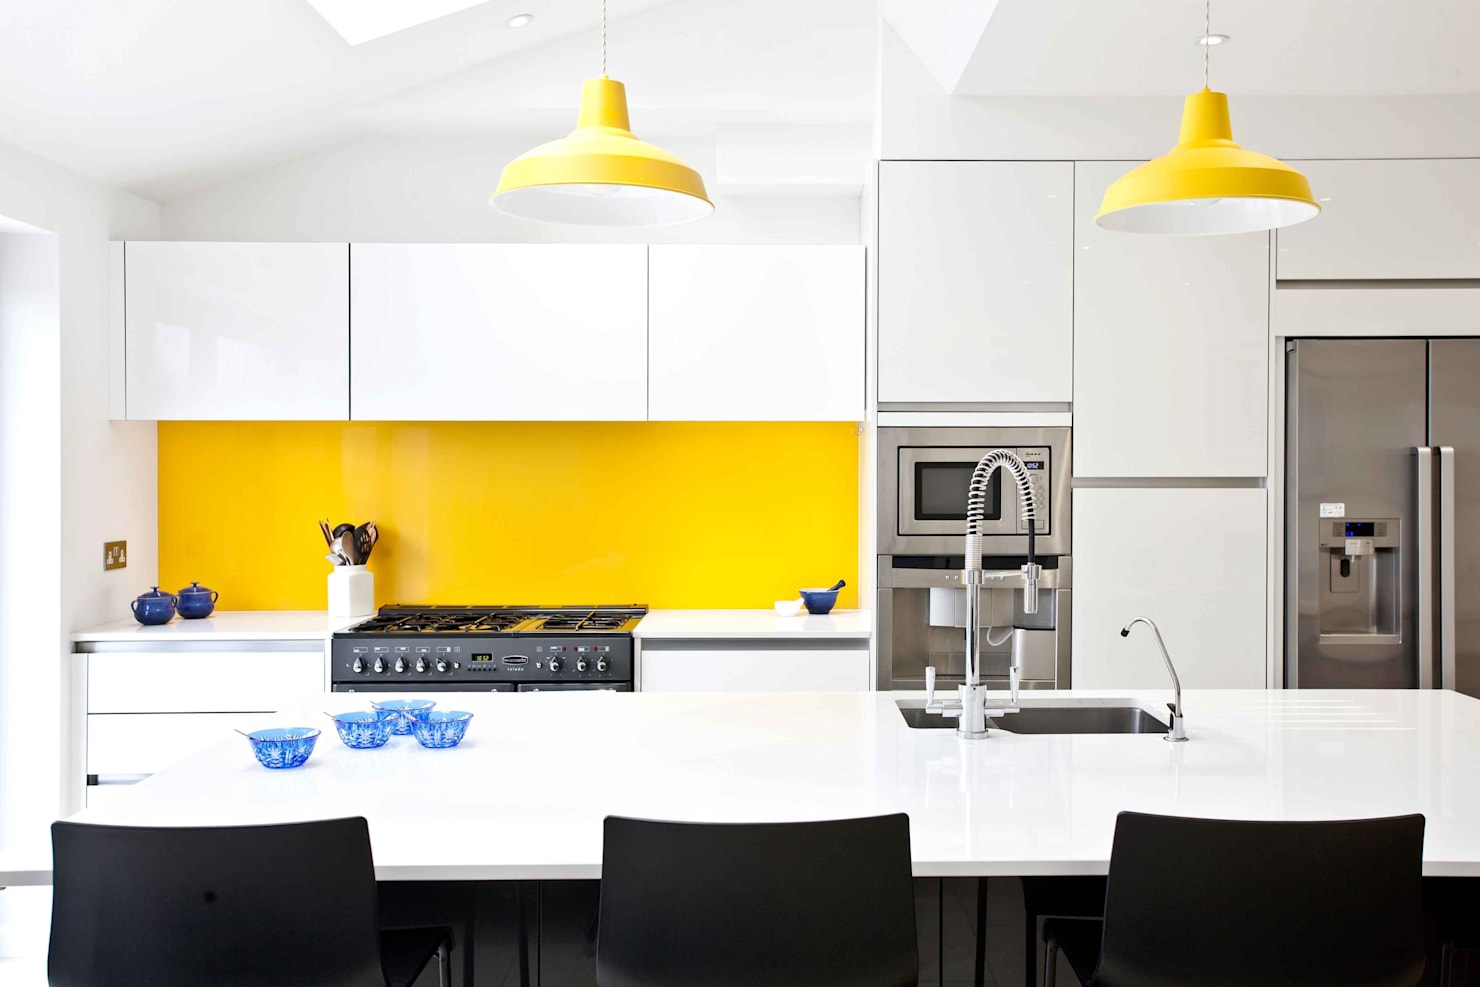 7 fantastic wall covering ideas for your kitchen